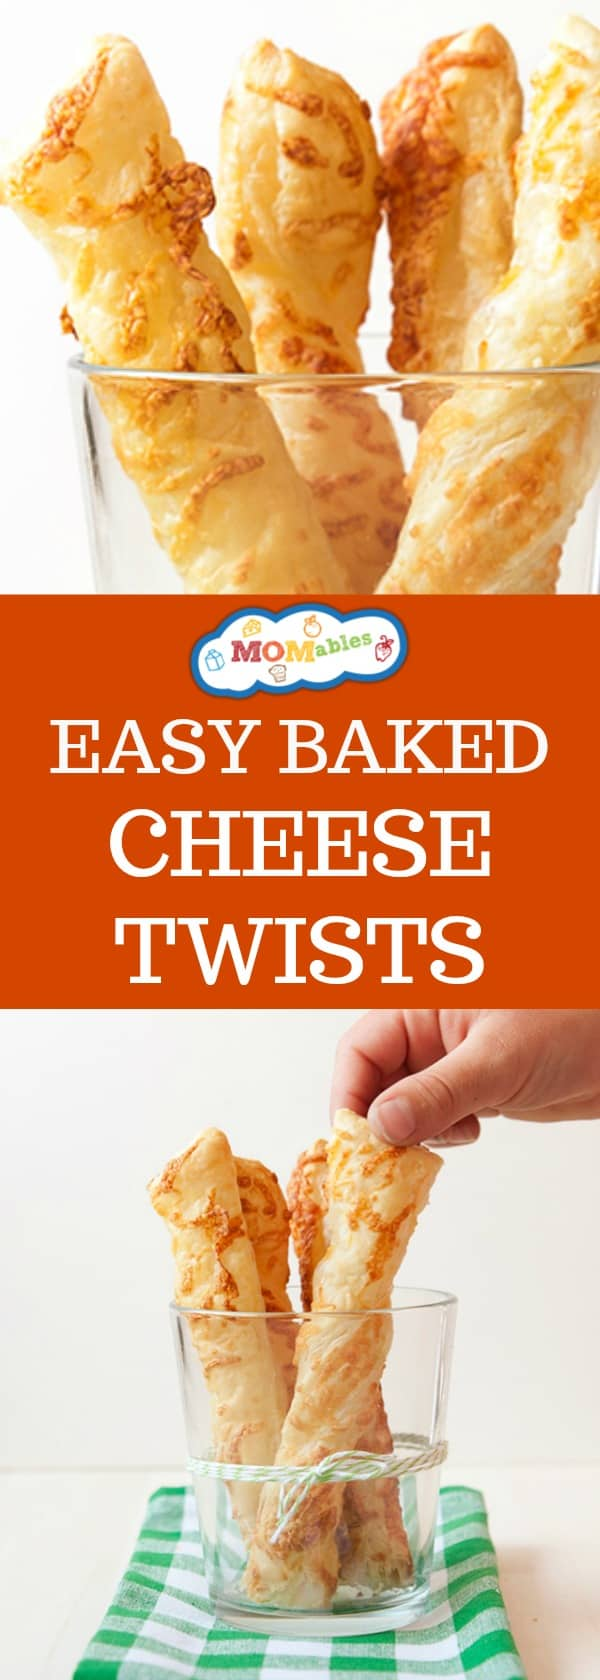 These Easy Baked Cheese Twists are flaky and twisted with cheese then baked to perfection! These are perfect for a school lunch or to eat with your favorite homemade soup recipe.